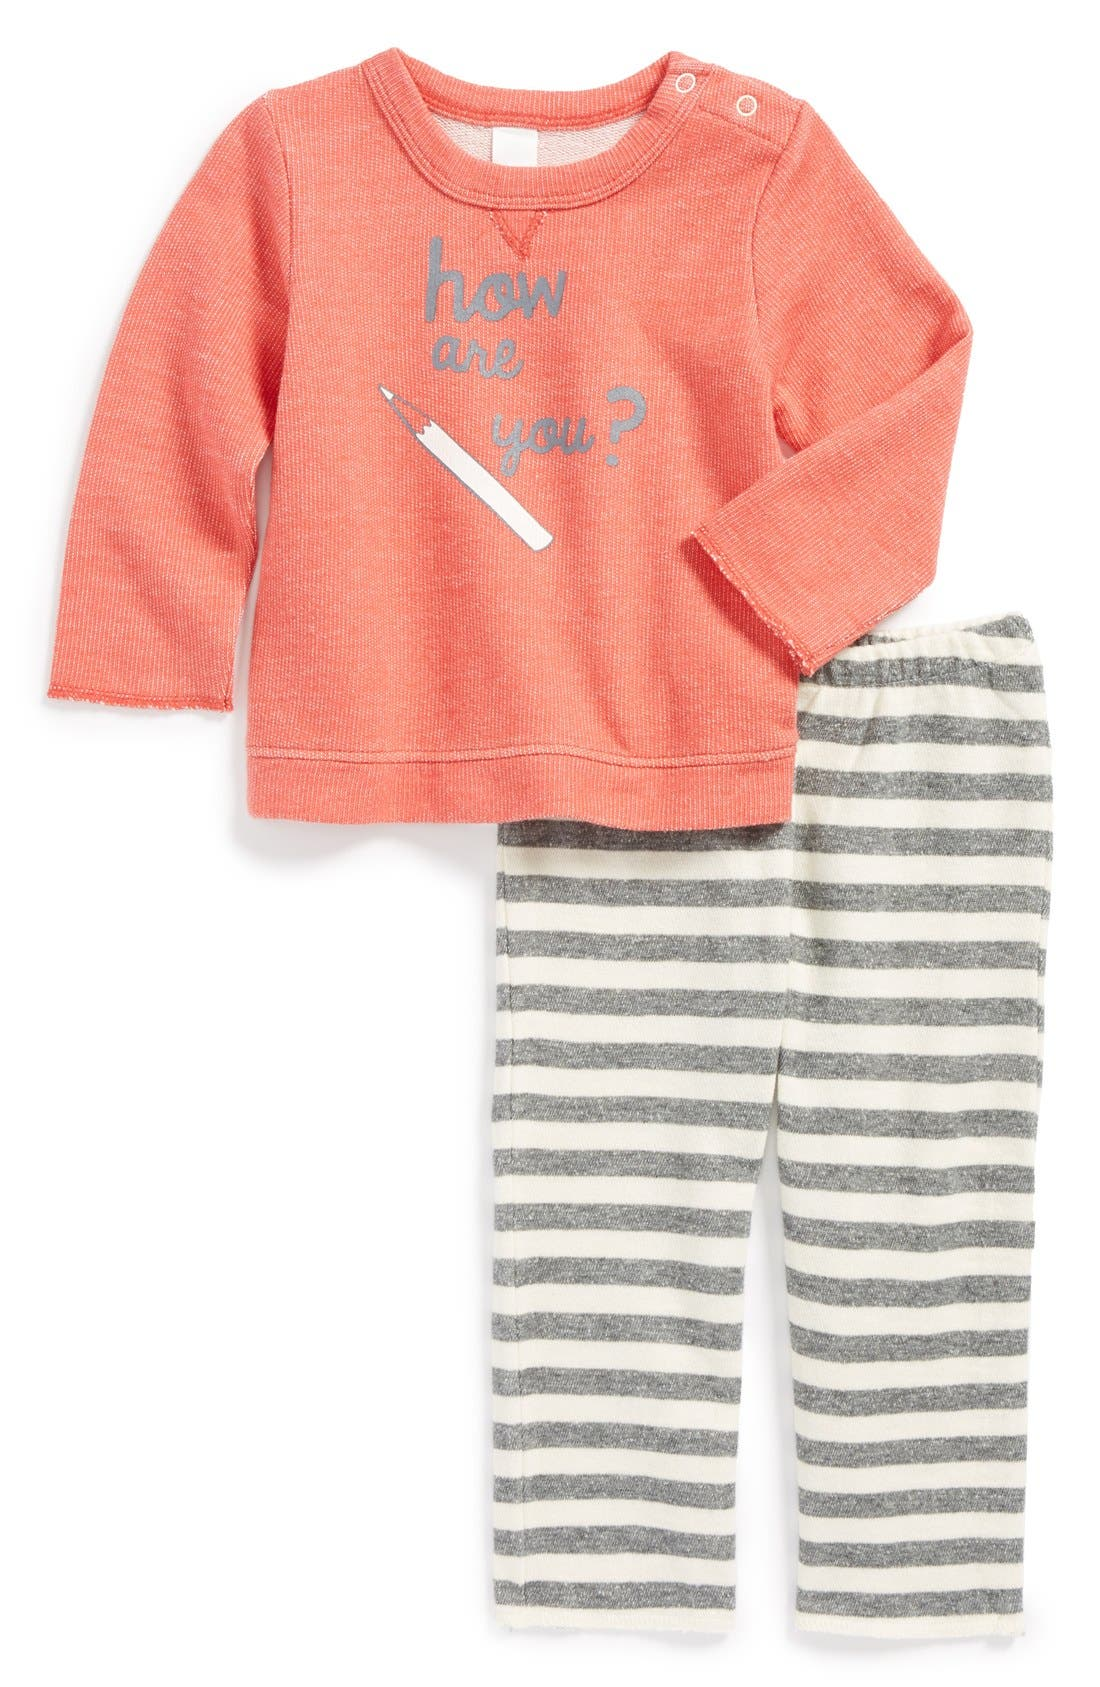 Alternate Image 1 Selected - Stem Baby 'How Are You?' Organic Cotton Sweatshirt & Pants (Baby)